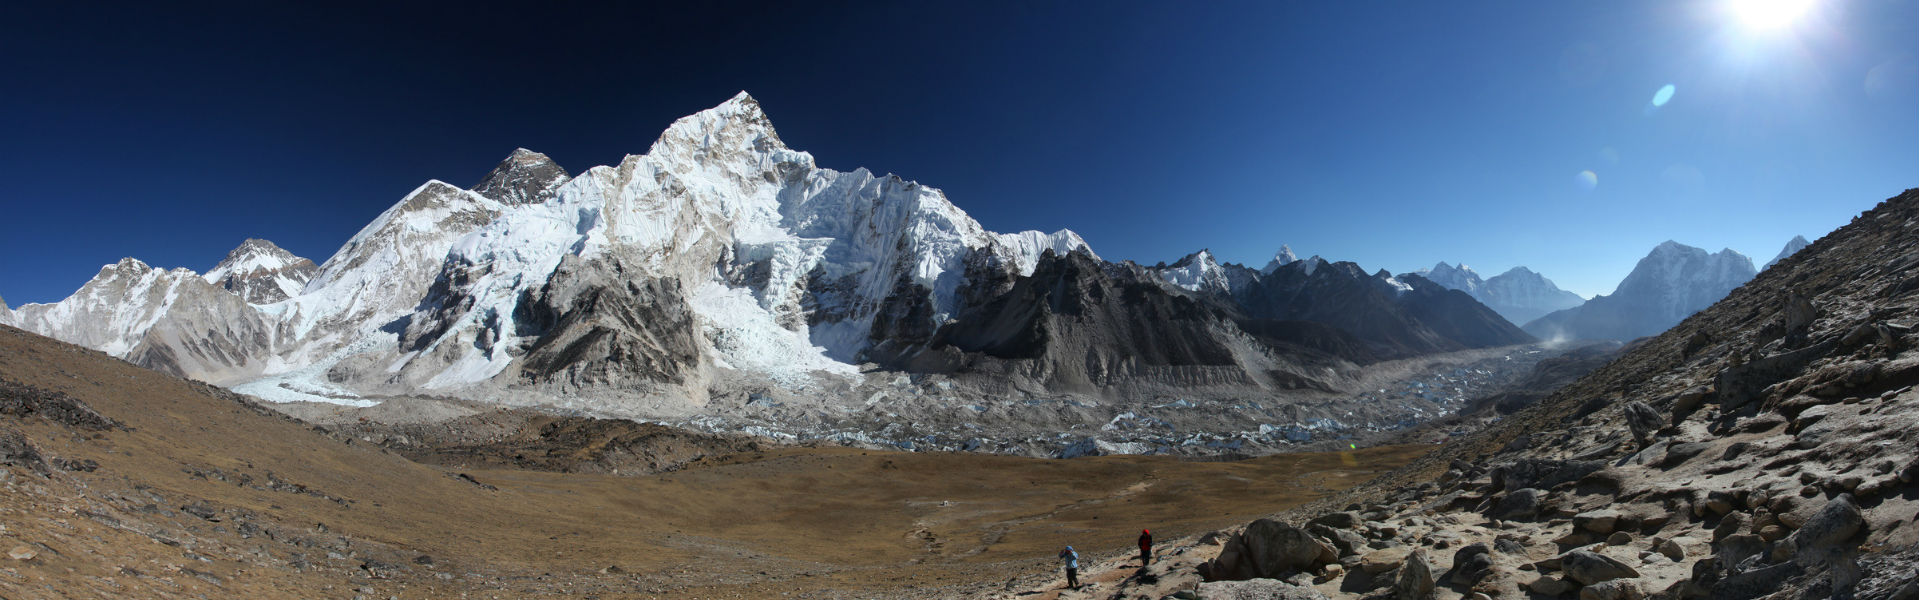 Everest Base Camp Trek with panoramic view of Everest, Lhotse and Nuptse from Kala Patthar